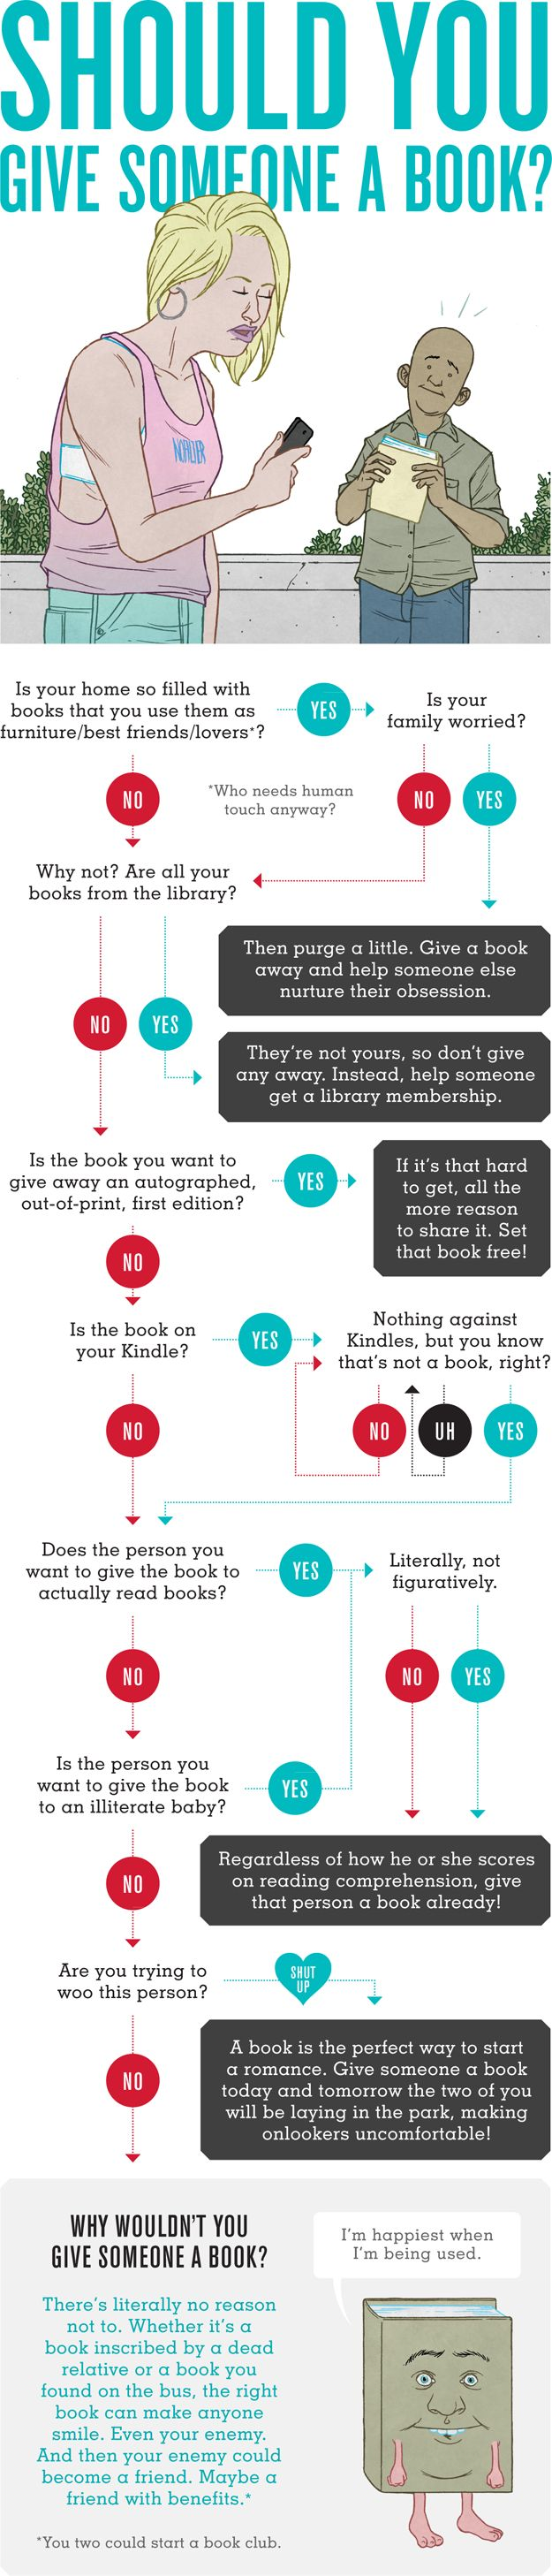 Should You Give Someone A Book?